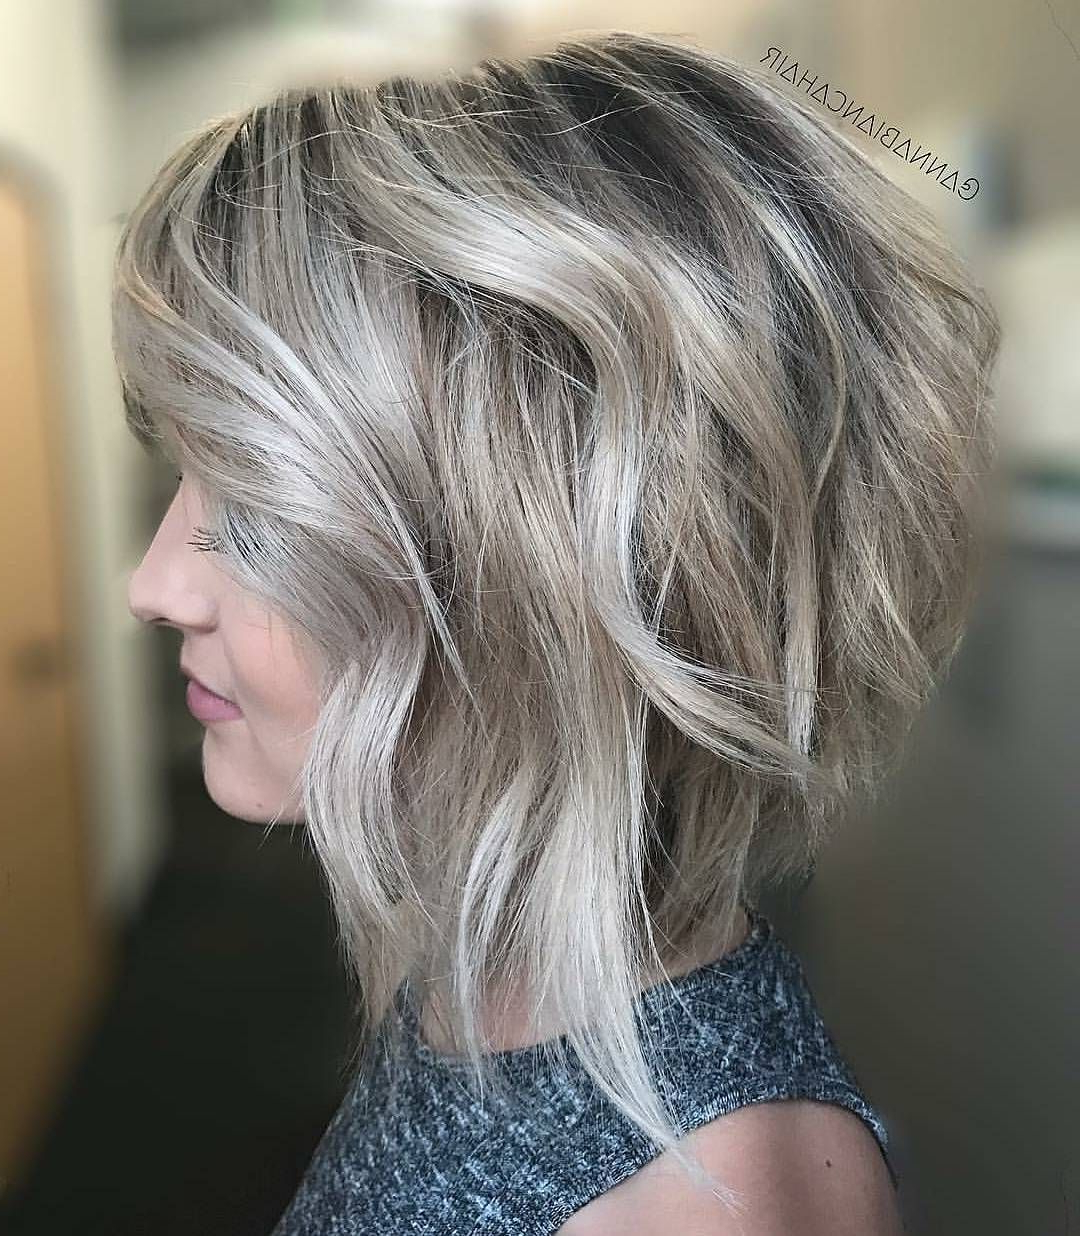 10 Messy Hairstyles For Short Hair – Quick Chic! Women Short Haircut Inside Chic Short Hair Cuts (View 5 of 25)